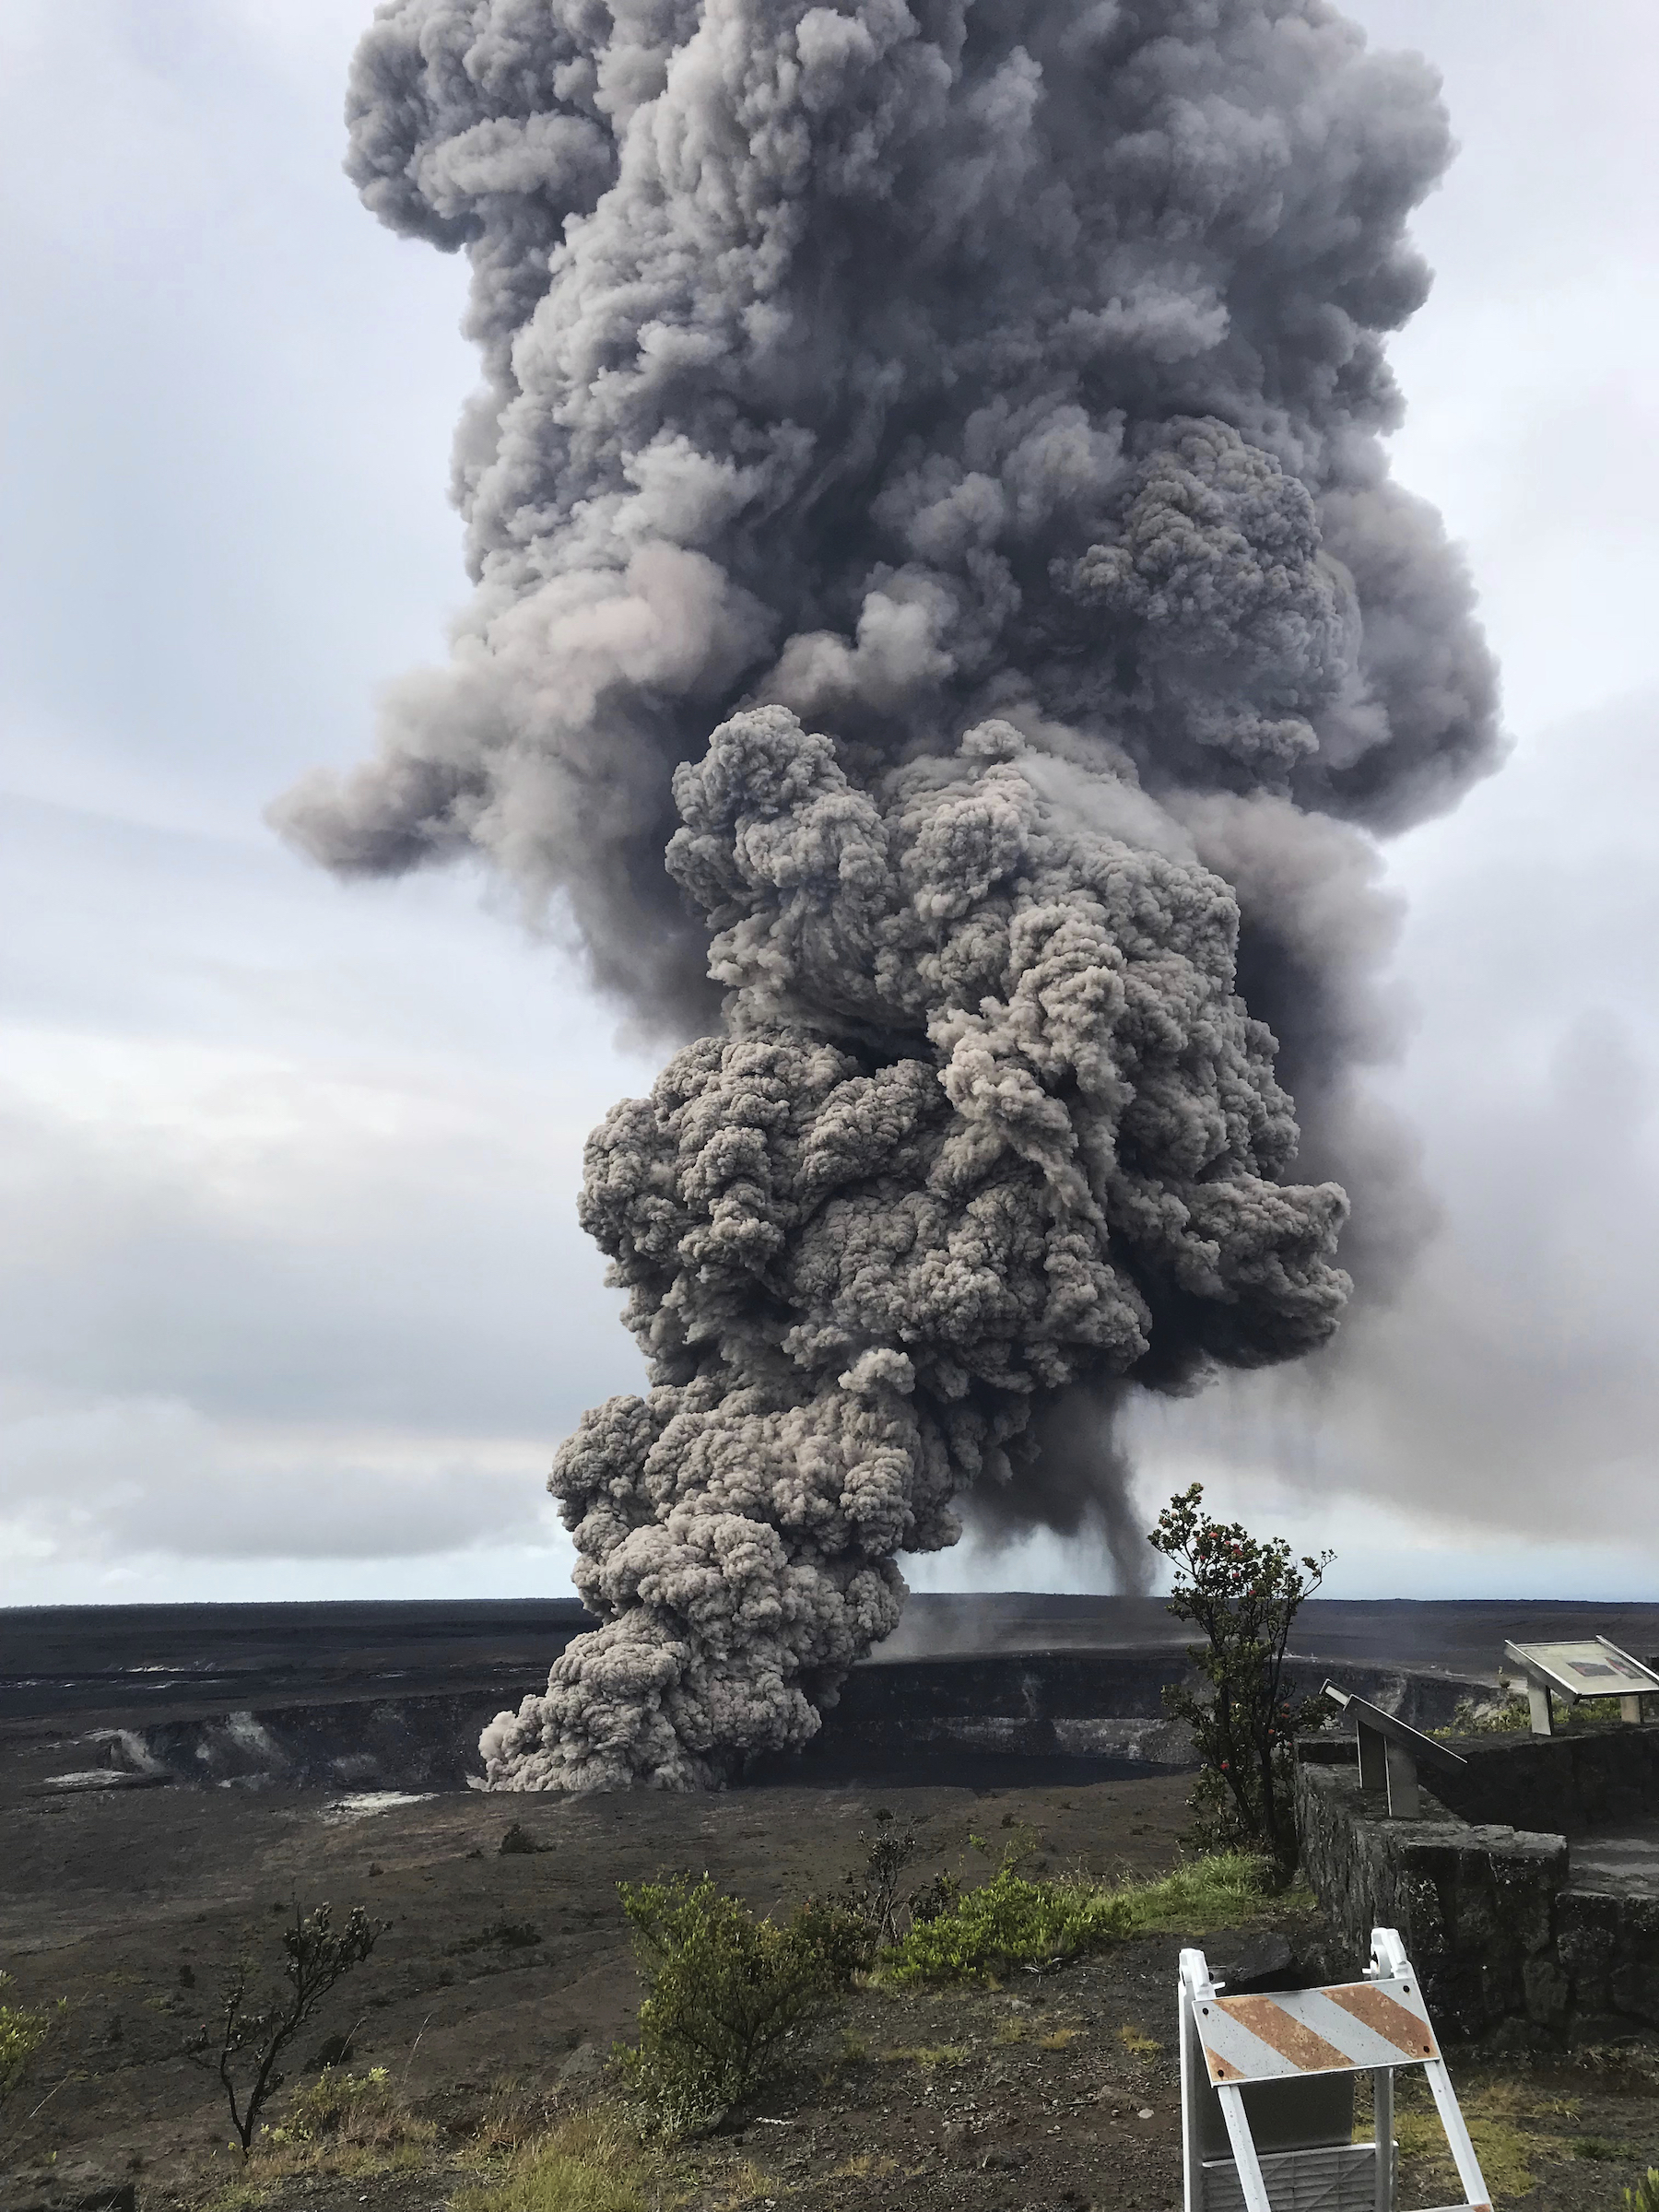 <div class='meta'><div class='origin-logo' data-origin='AP'></div><span class='caption-text' data-credit='USGS/AP'>In this Wednesday, May 9, 2018, photo, an ash column rises from the crater at the summit of Kilauea volcano at Volcanoes National Park, Hawaii.</span></div>